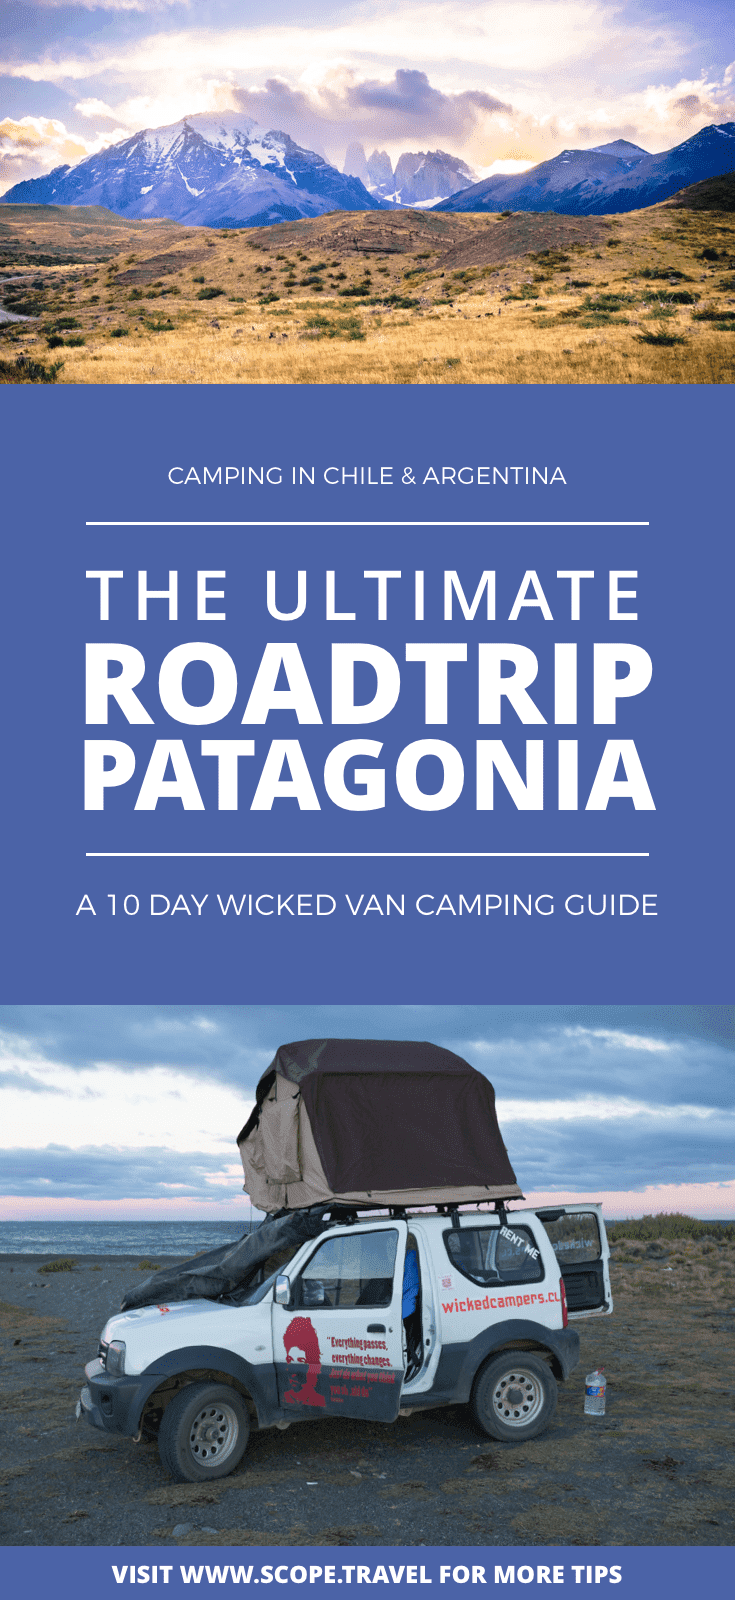 pinterest camping roadtrip patagonia argentina chile